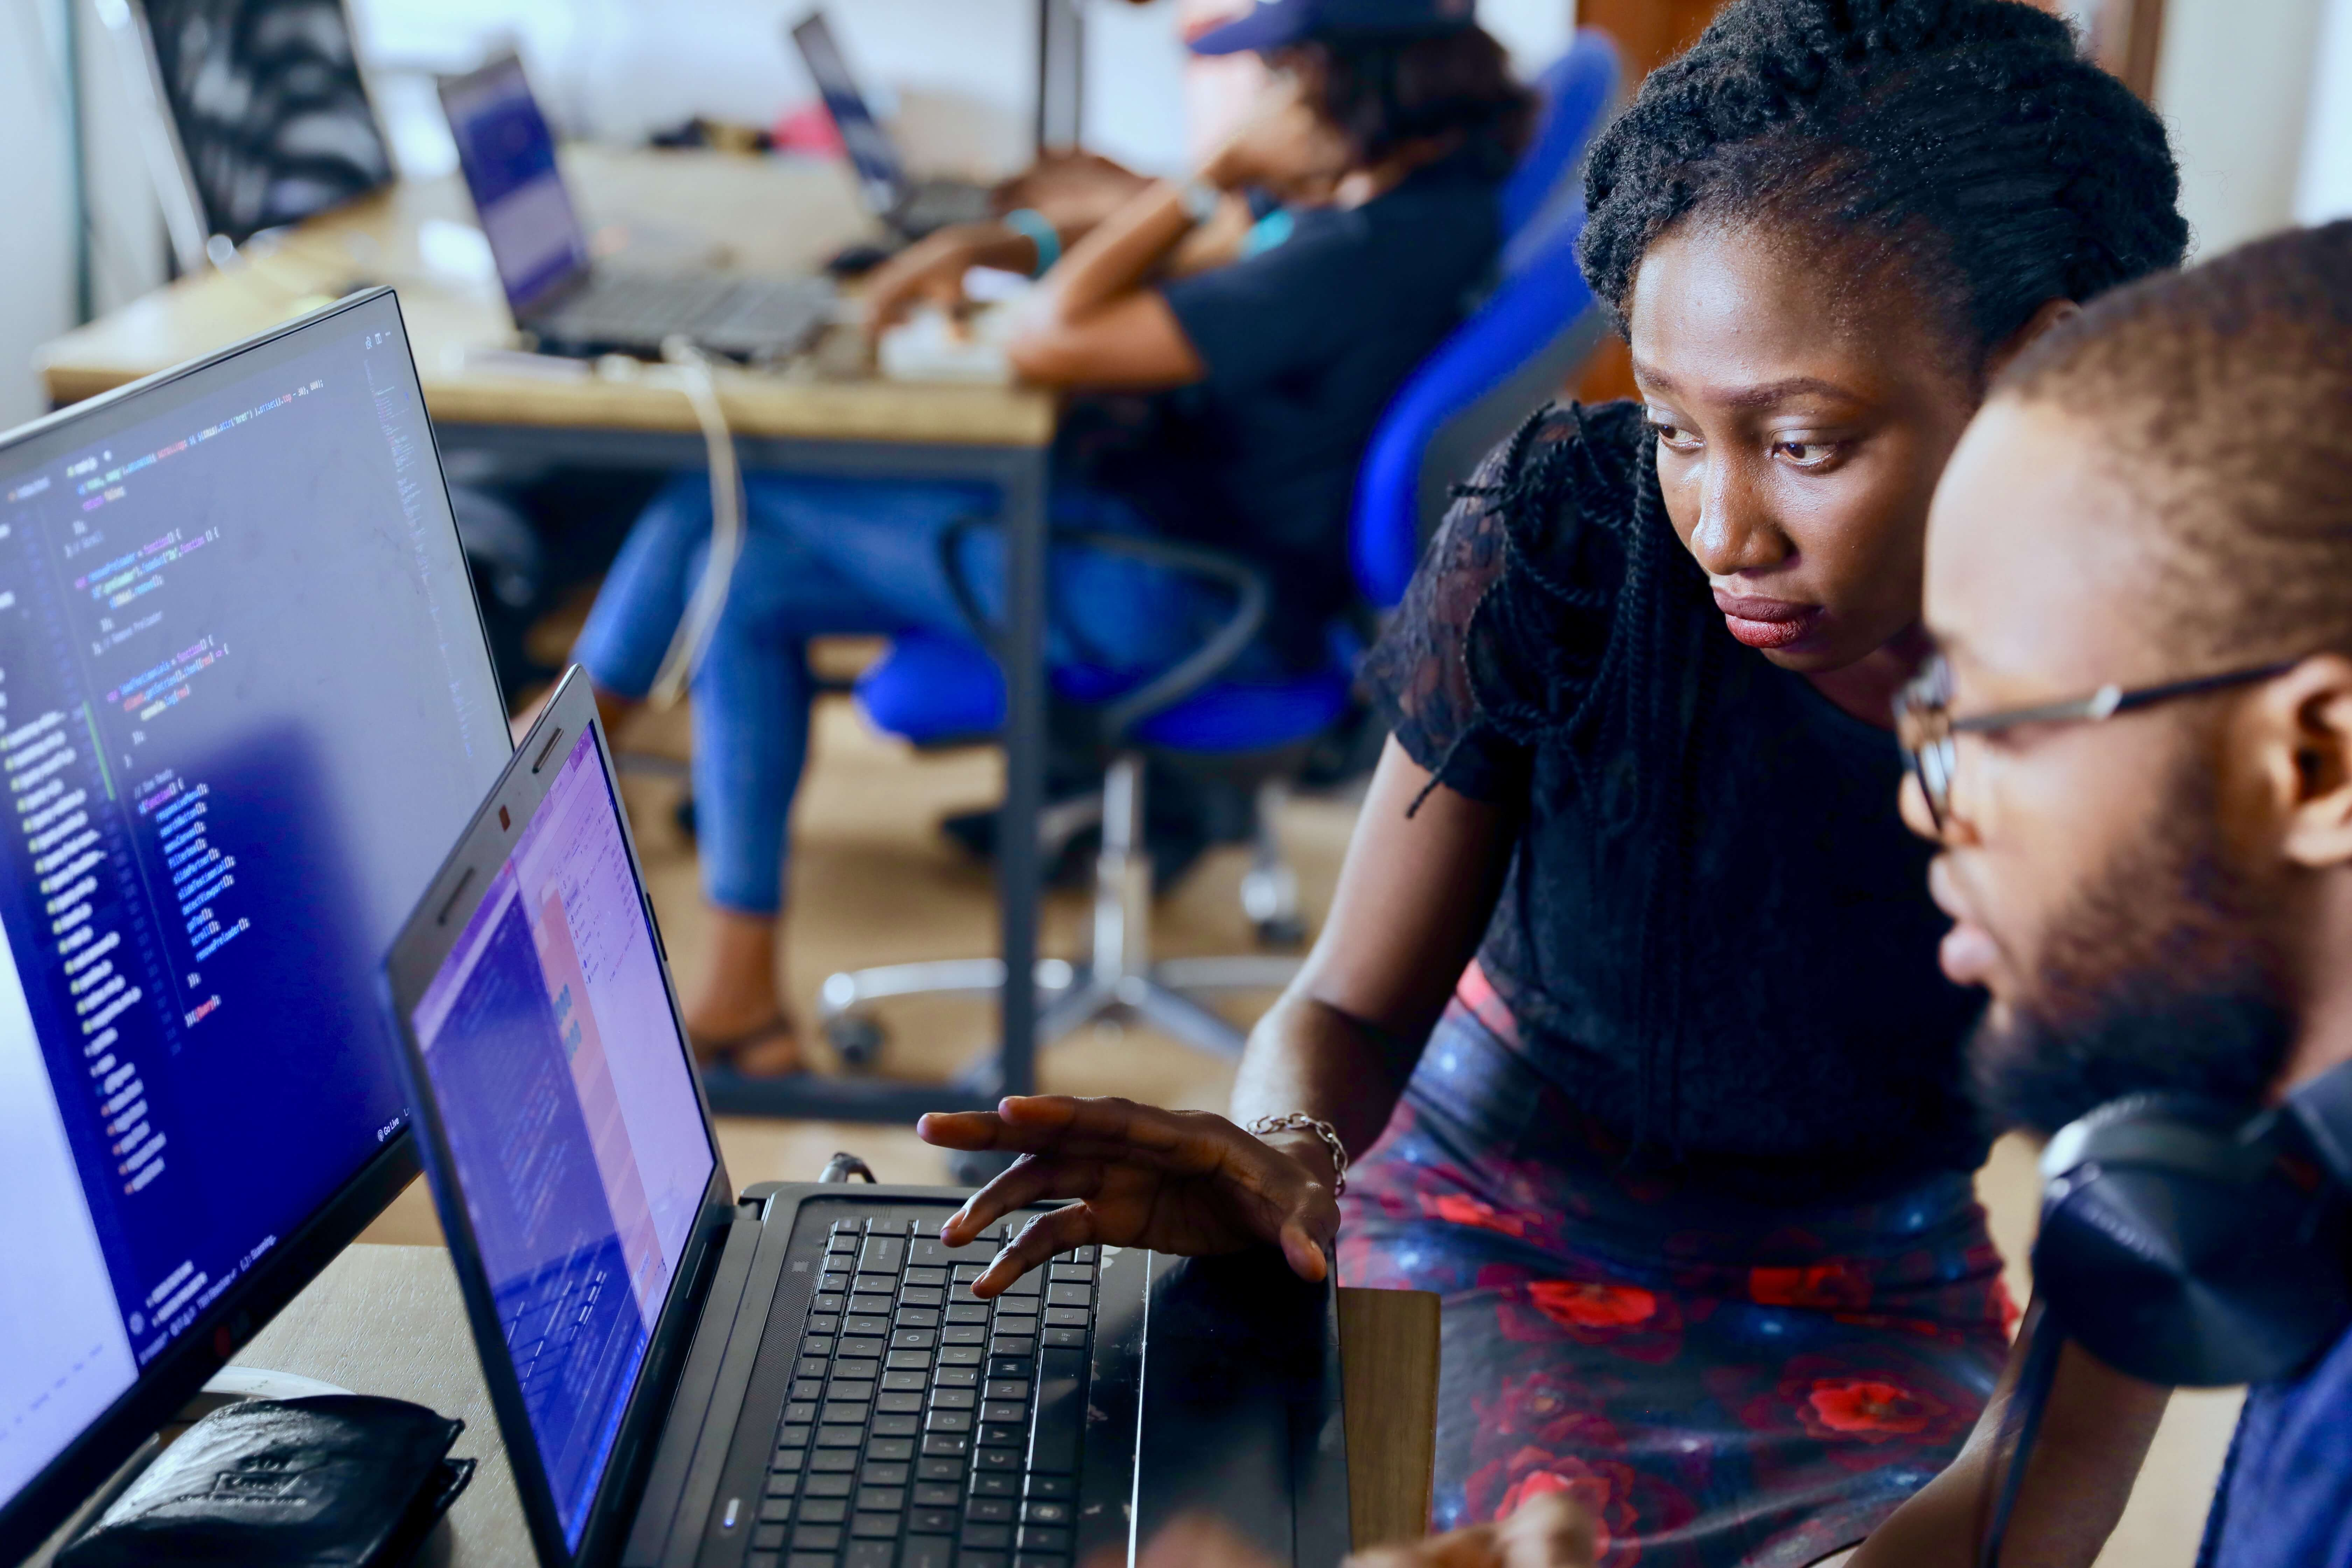 Young woman showing something to a colleague in front of a laptop